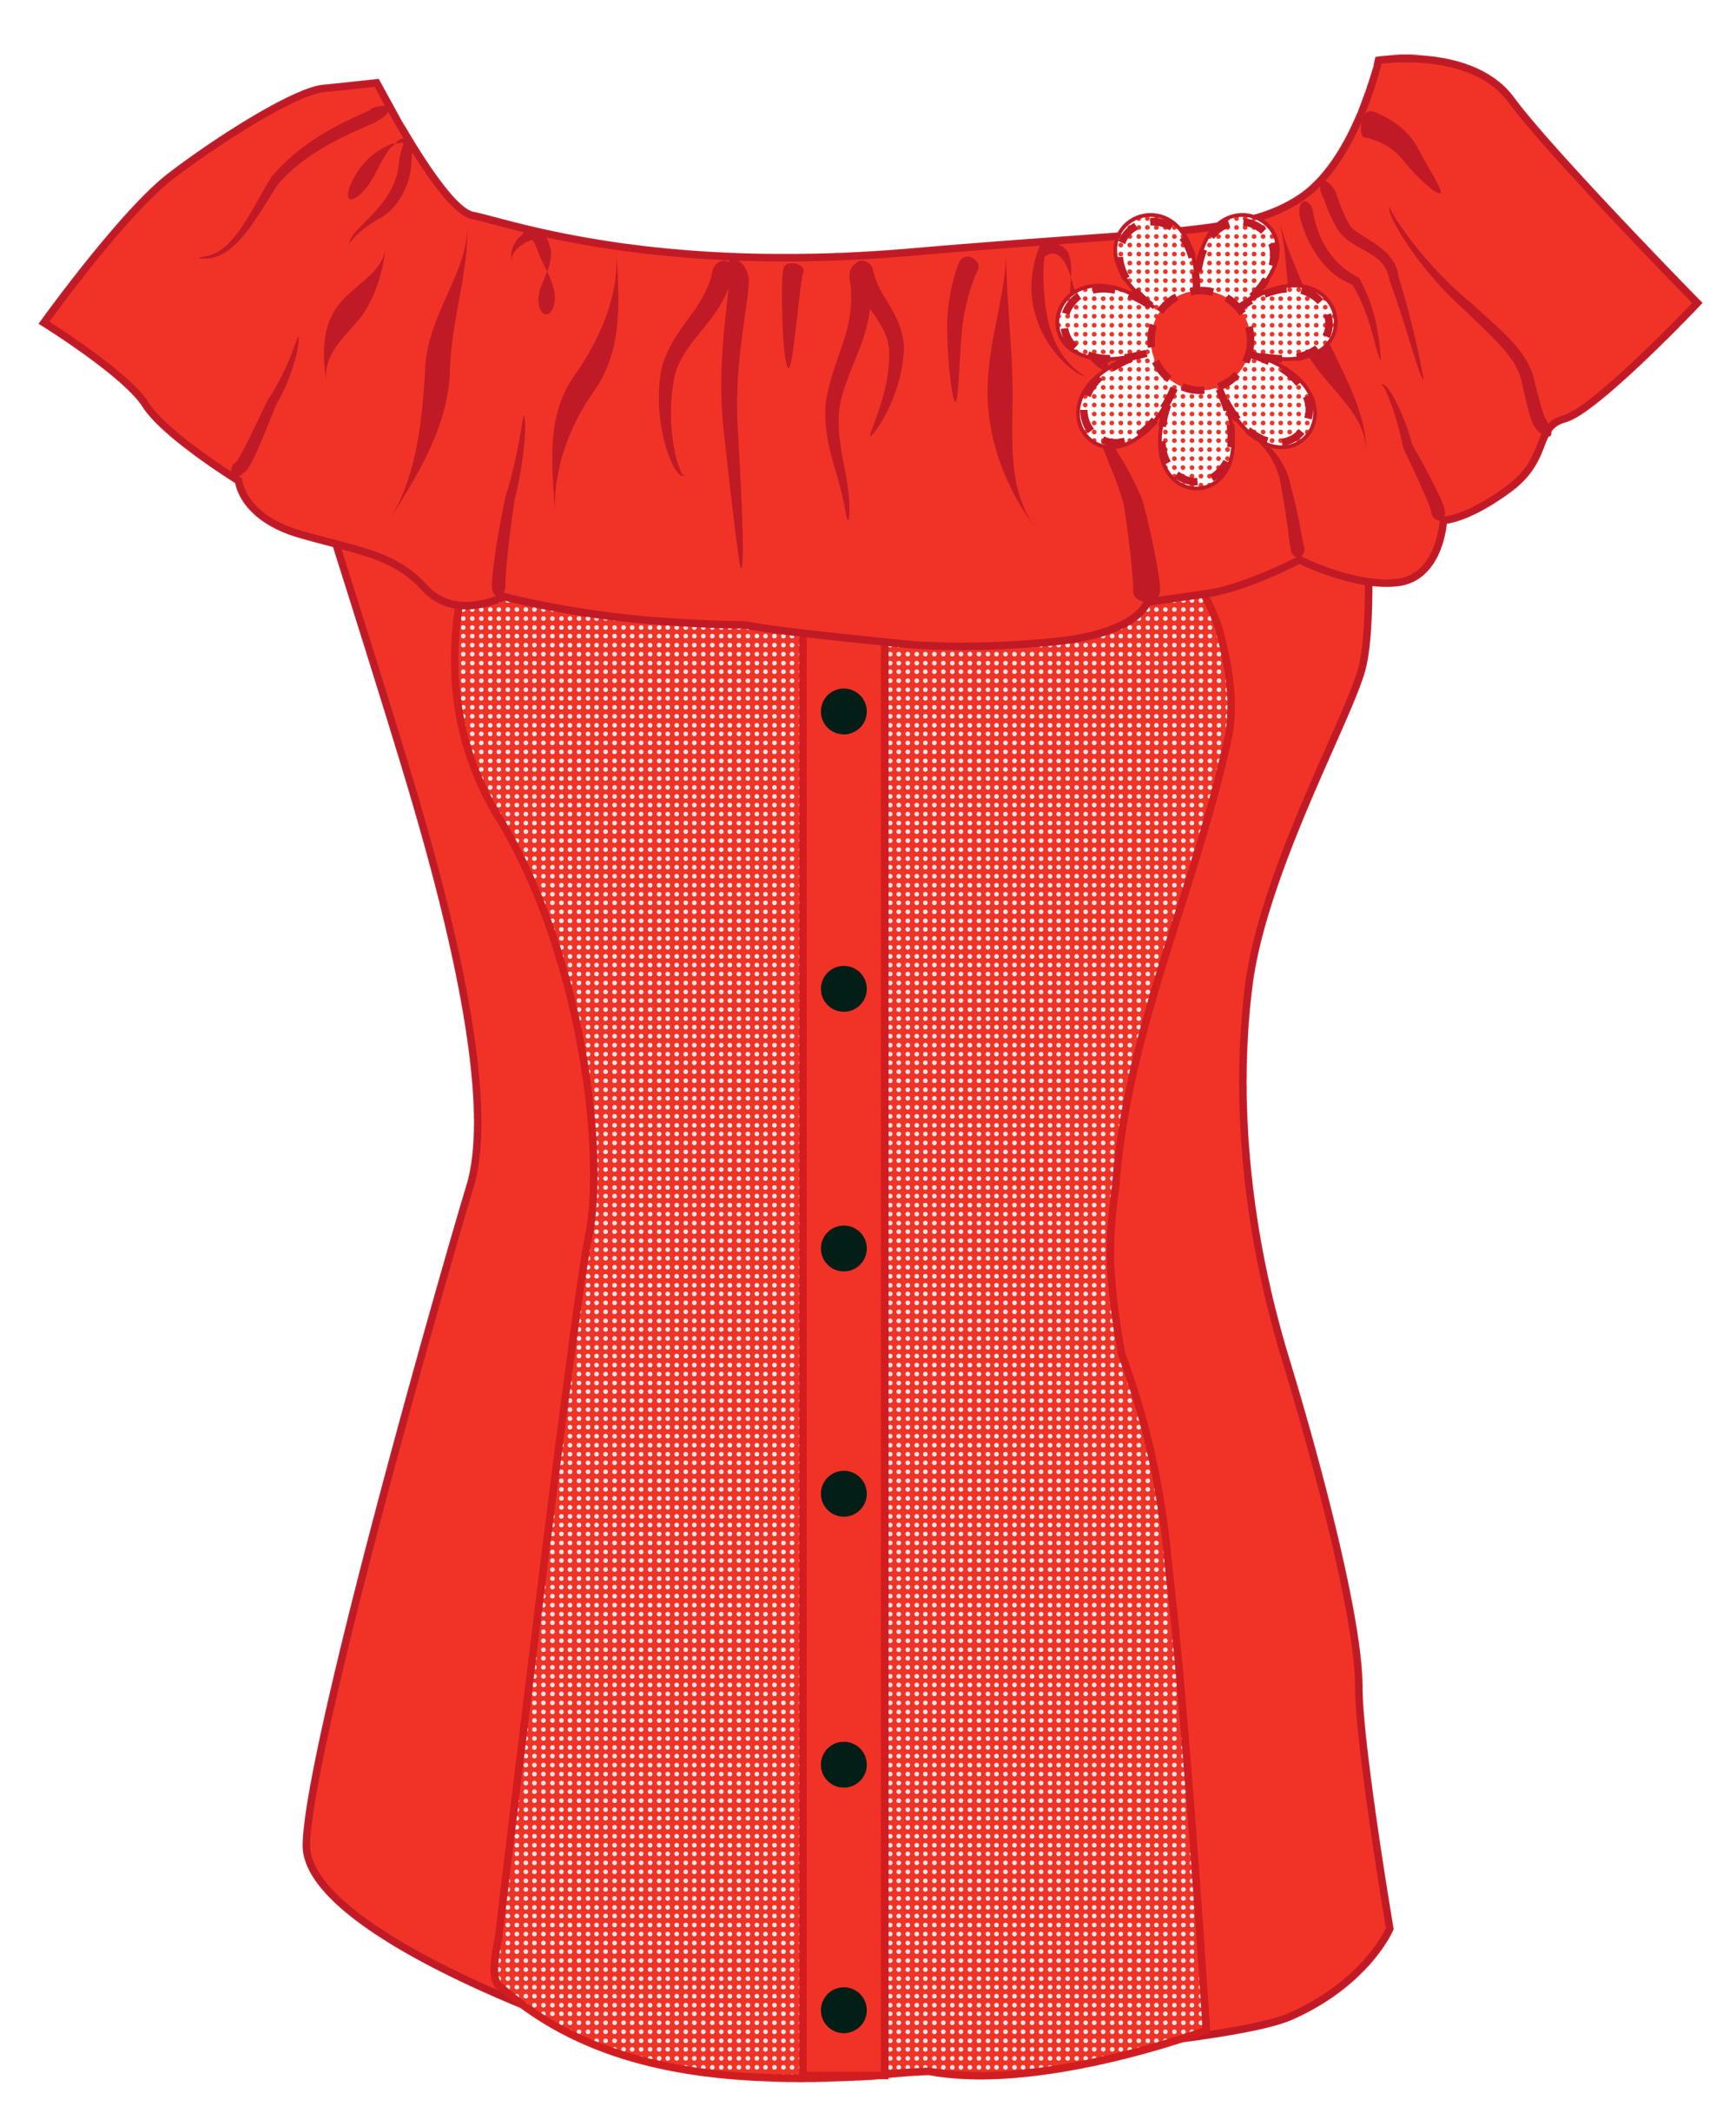 hight resolution of female red top png clipart